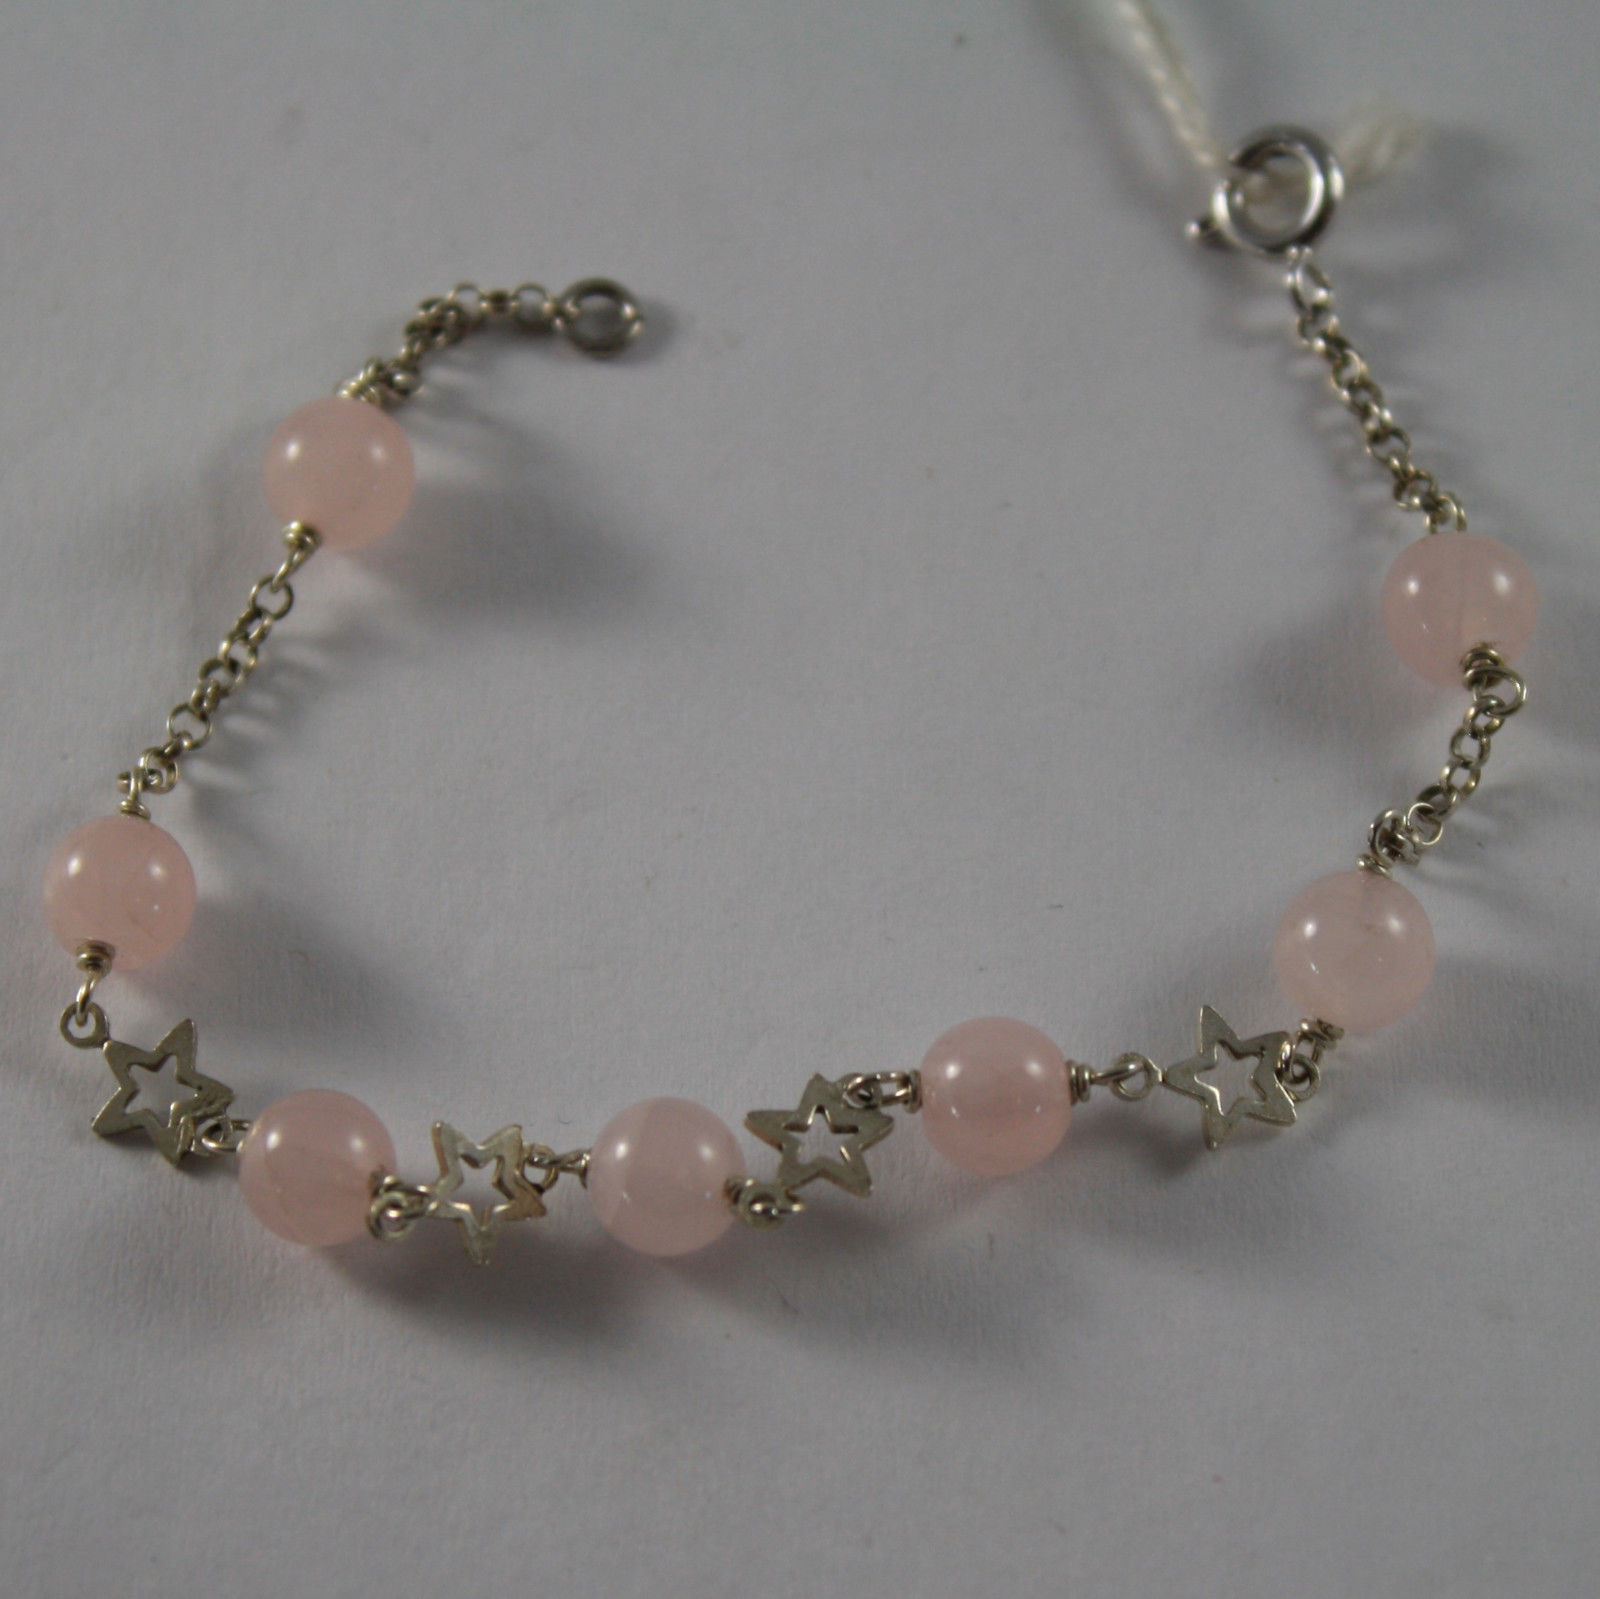 .925 RHODIUM SILVER BRACELET WITH PINK QUARTZ AND SMALL STARS